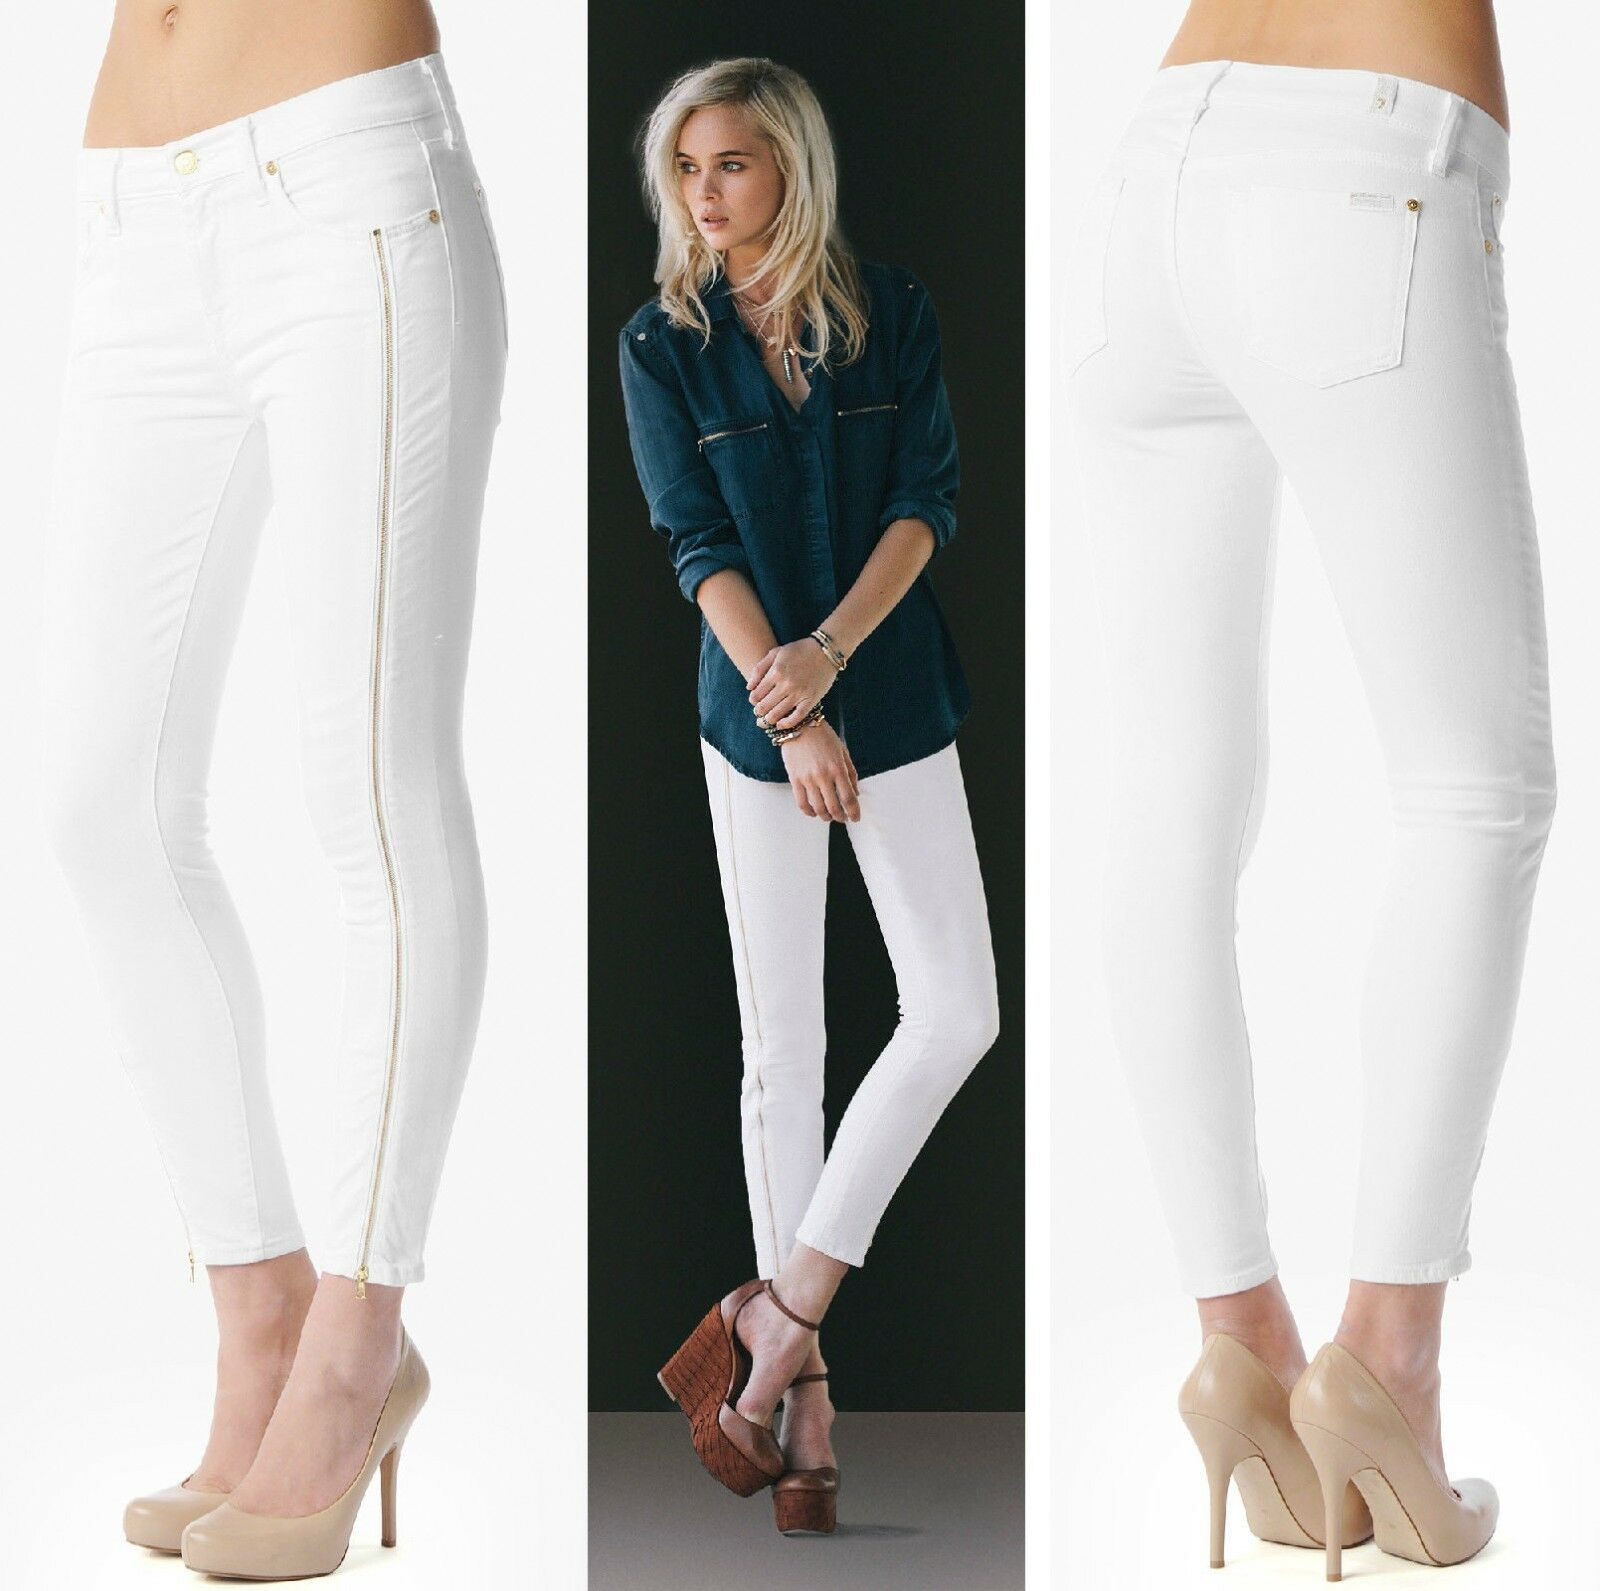 215 7 For All Mankind Clean White Slim Illusion Cropped Skinny Leg Zips Jeans